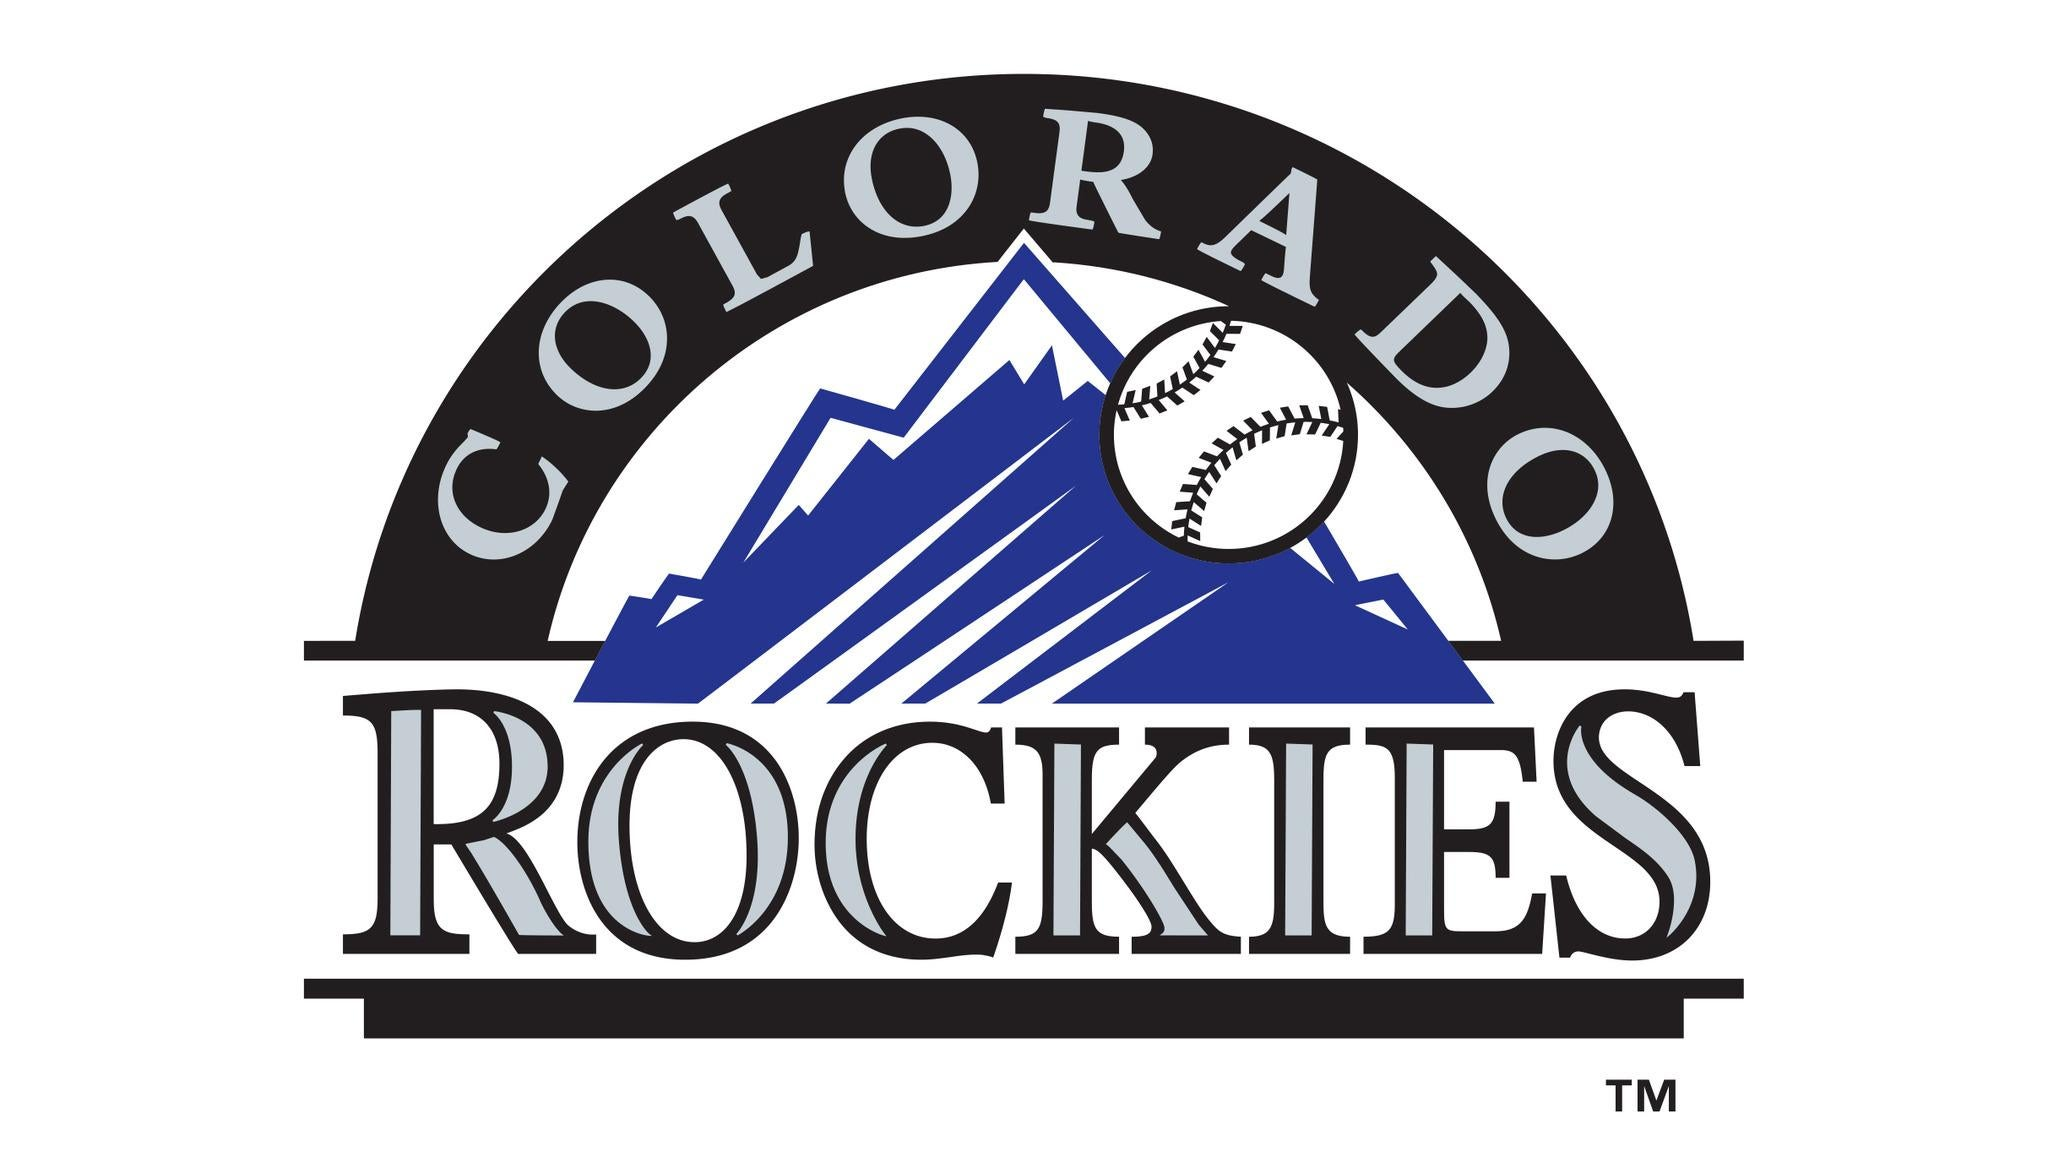 Colorado Rockies vs. San Francisco Giants at Coors Field - Denver, CO 80205